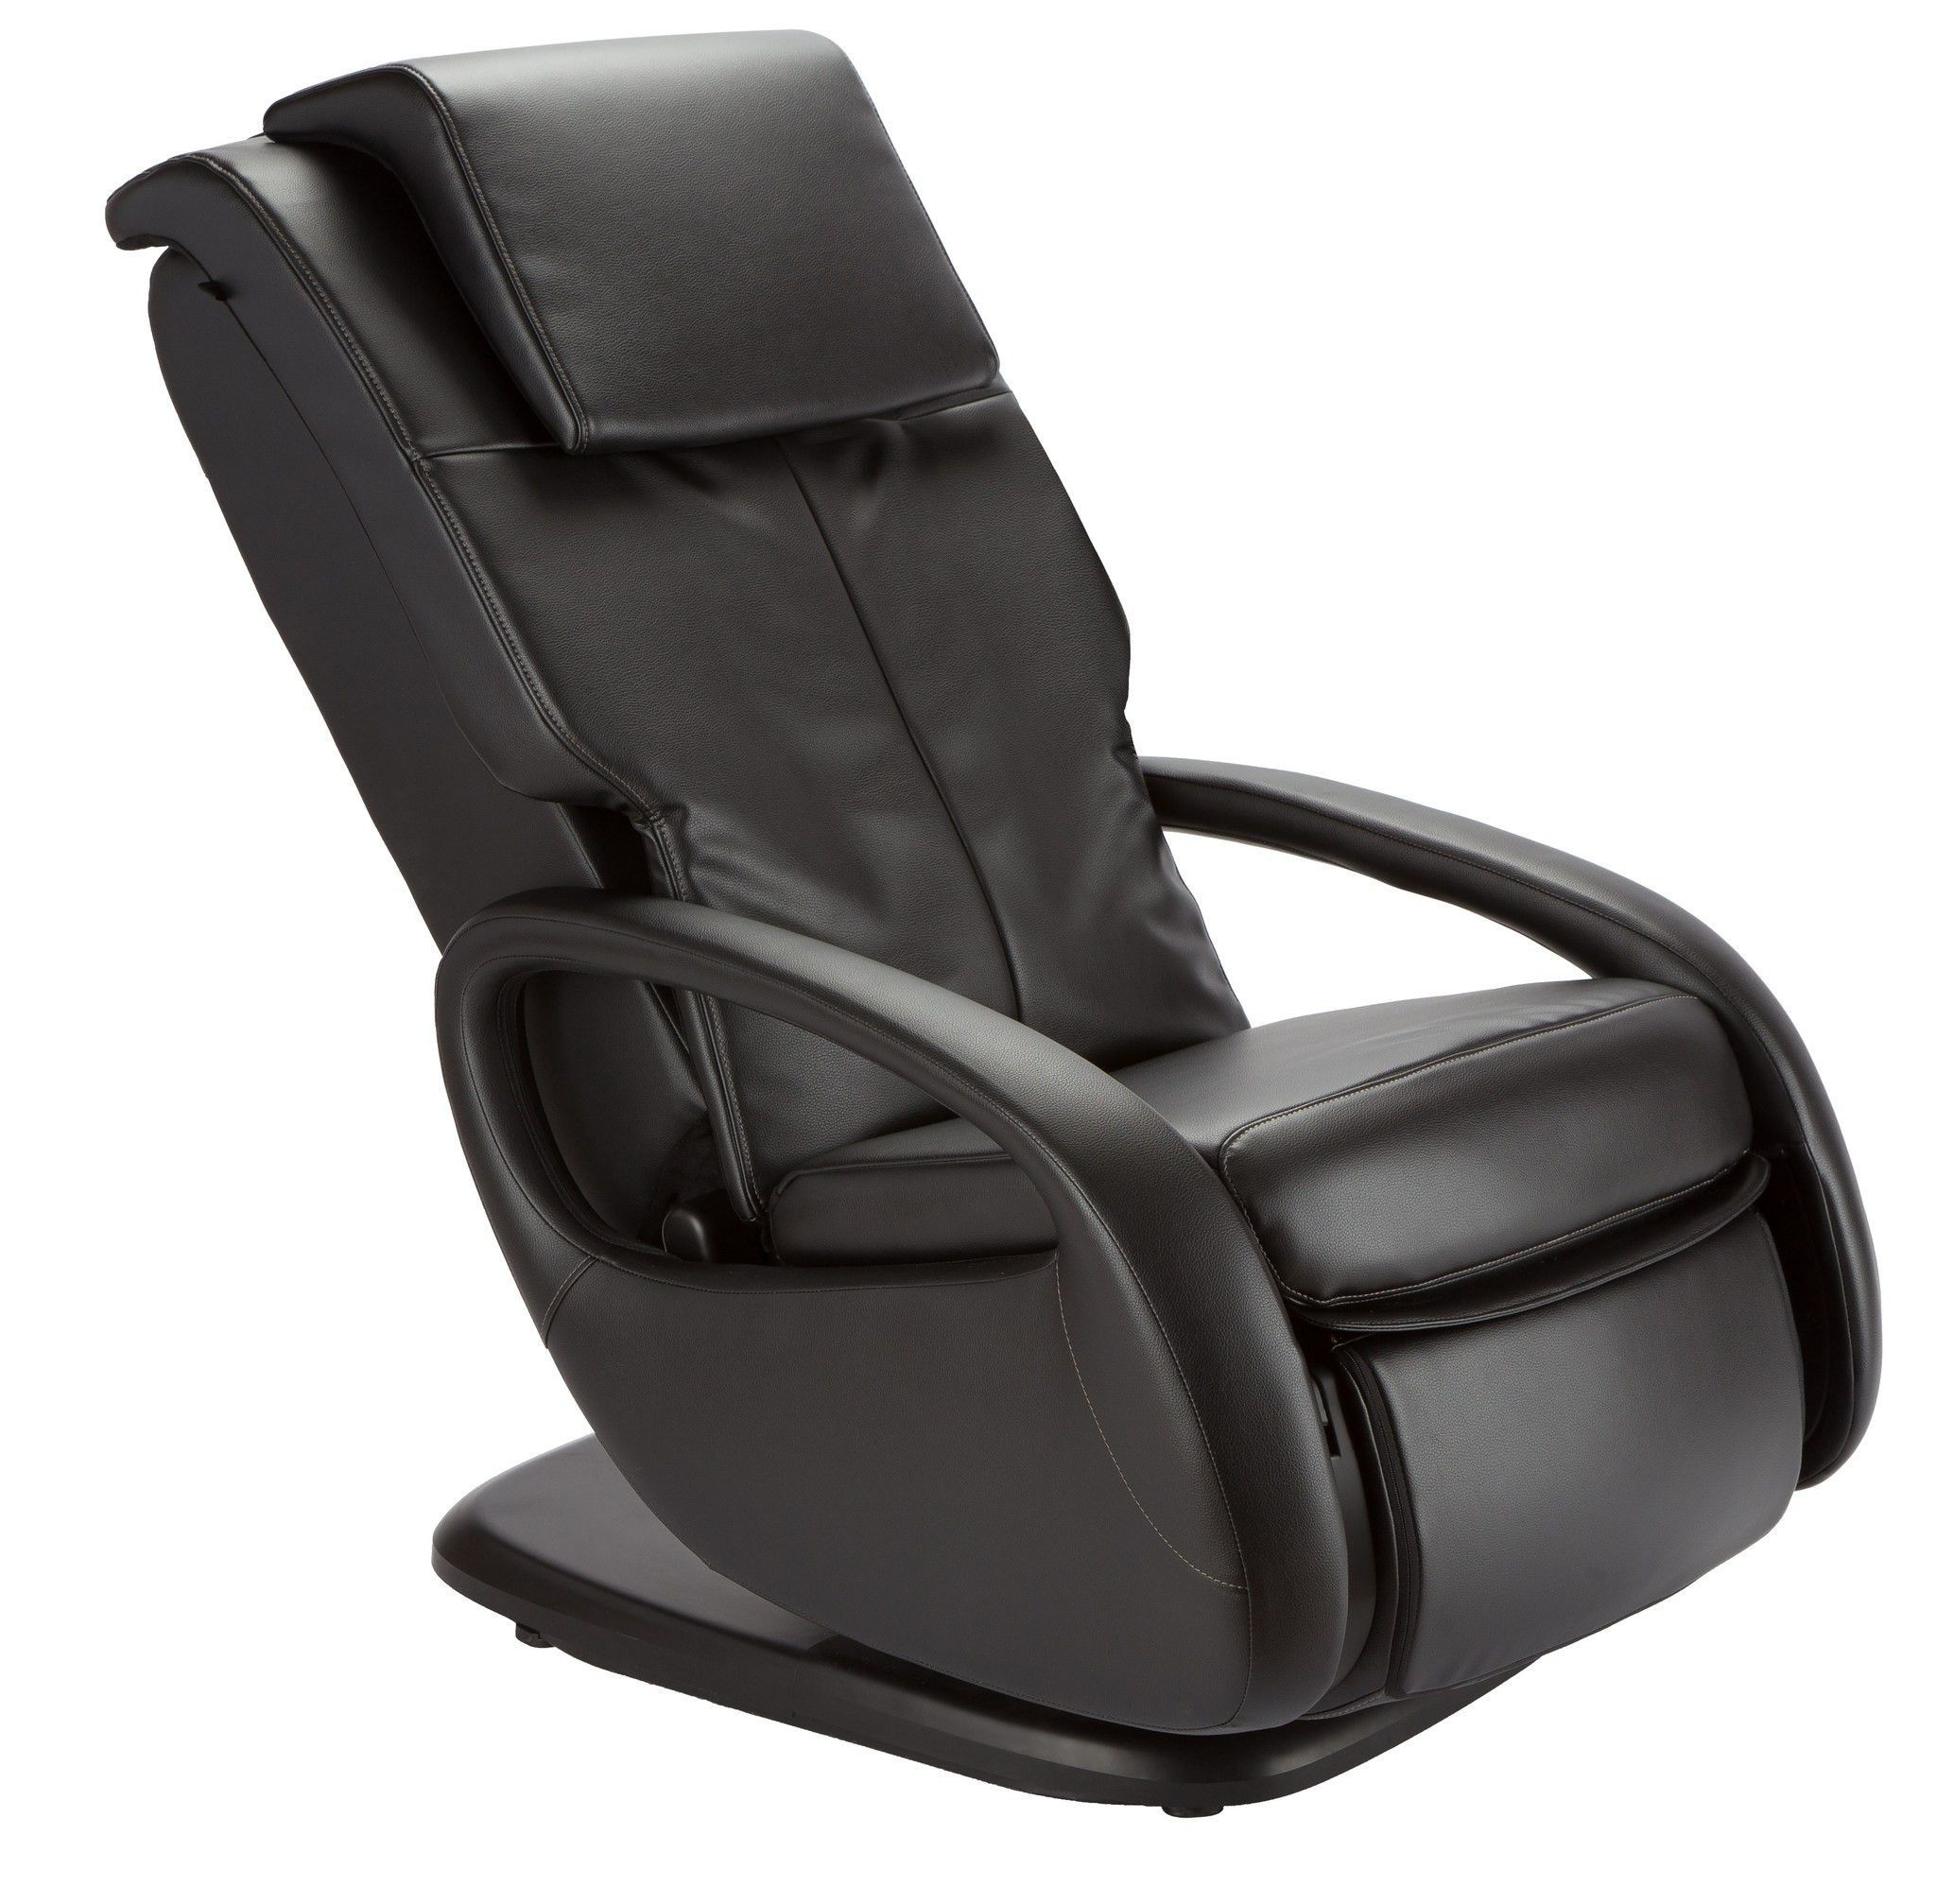 Human Touch Whole Body 5.1 Massage Chair Massage chair